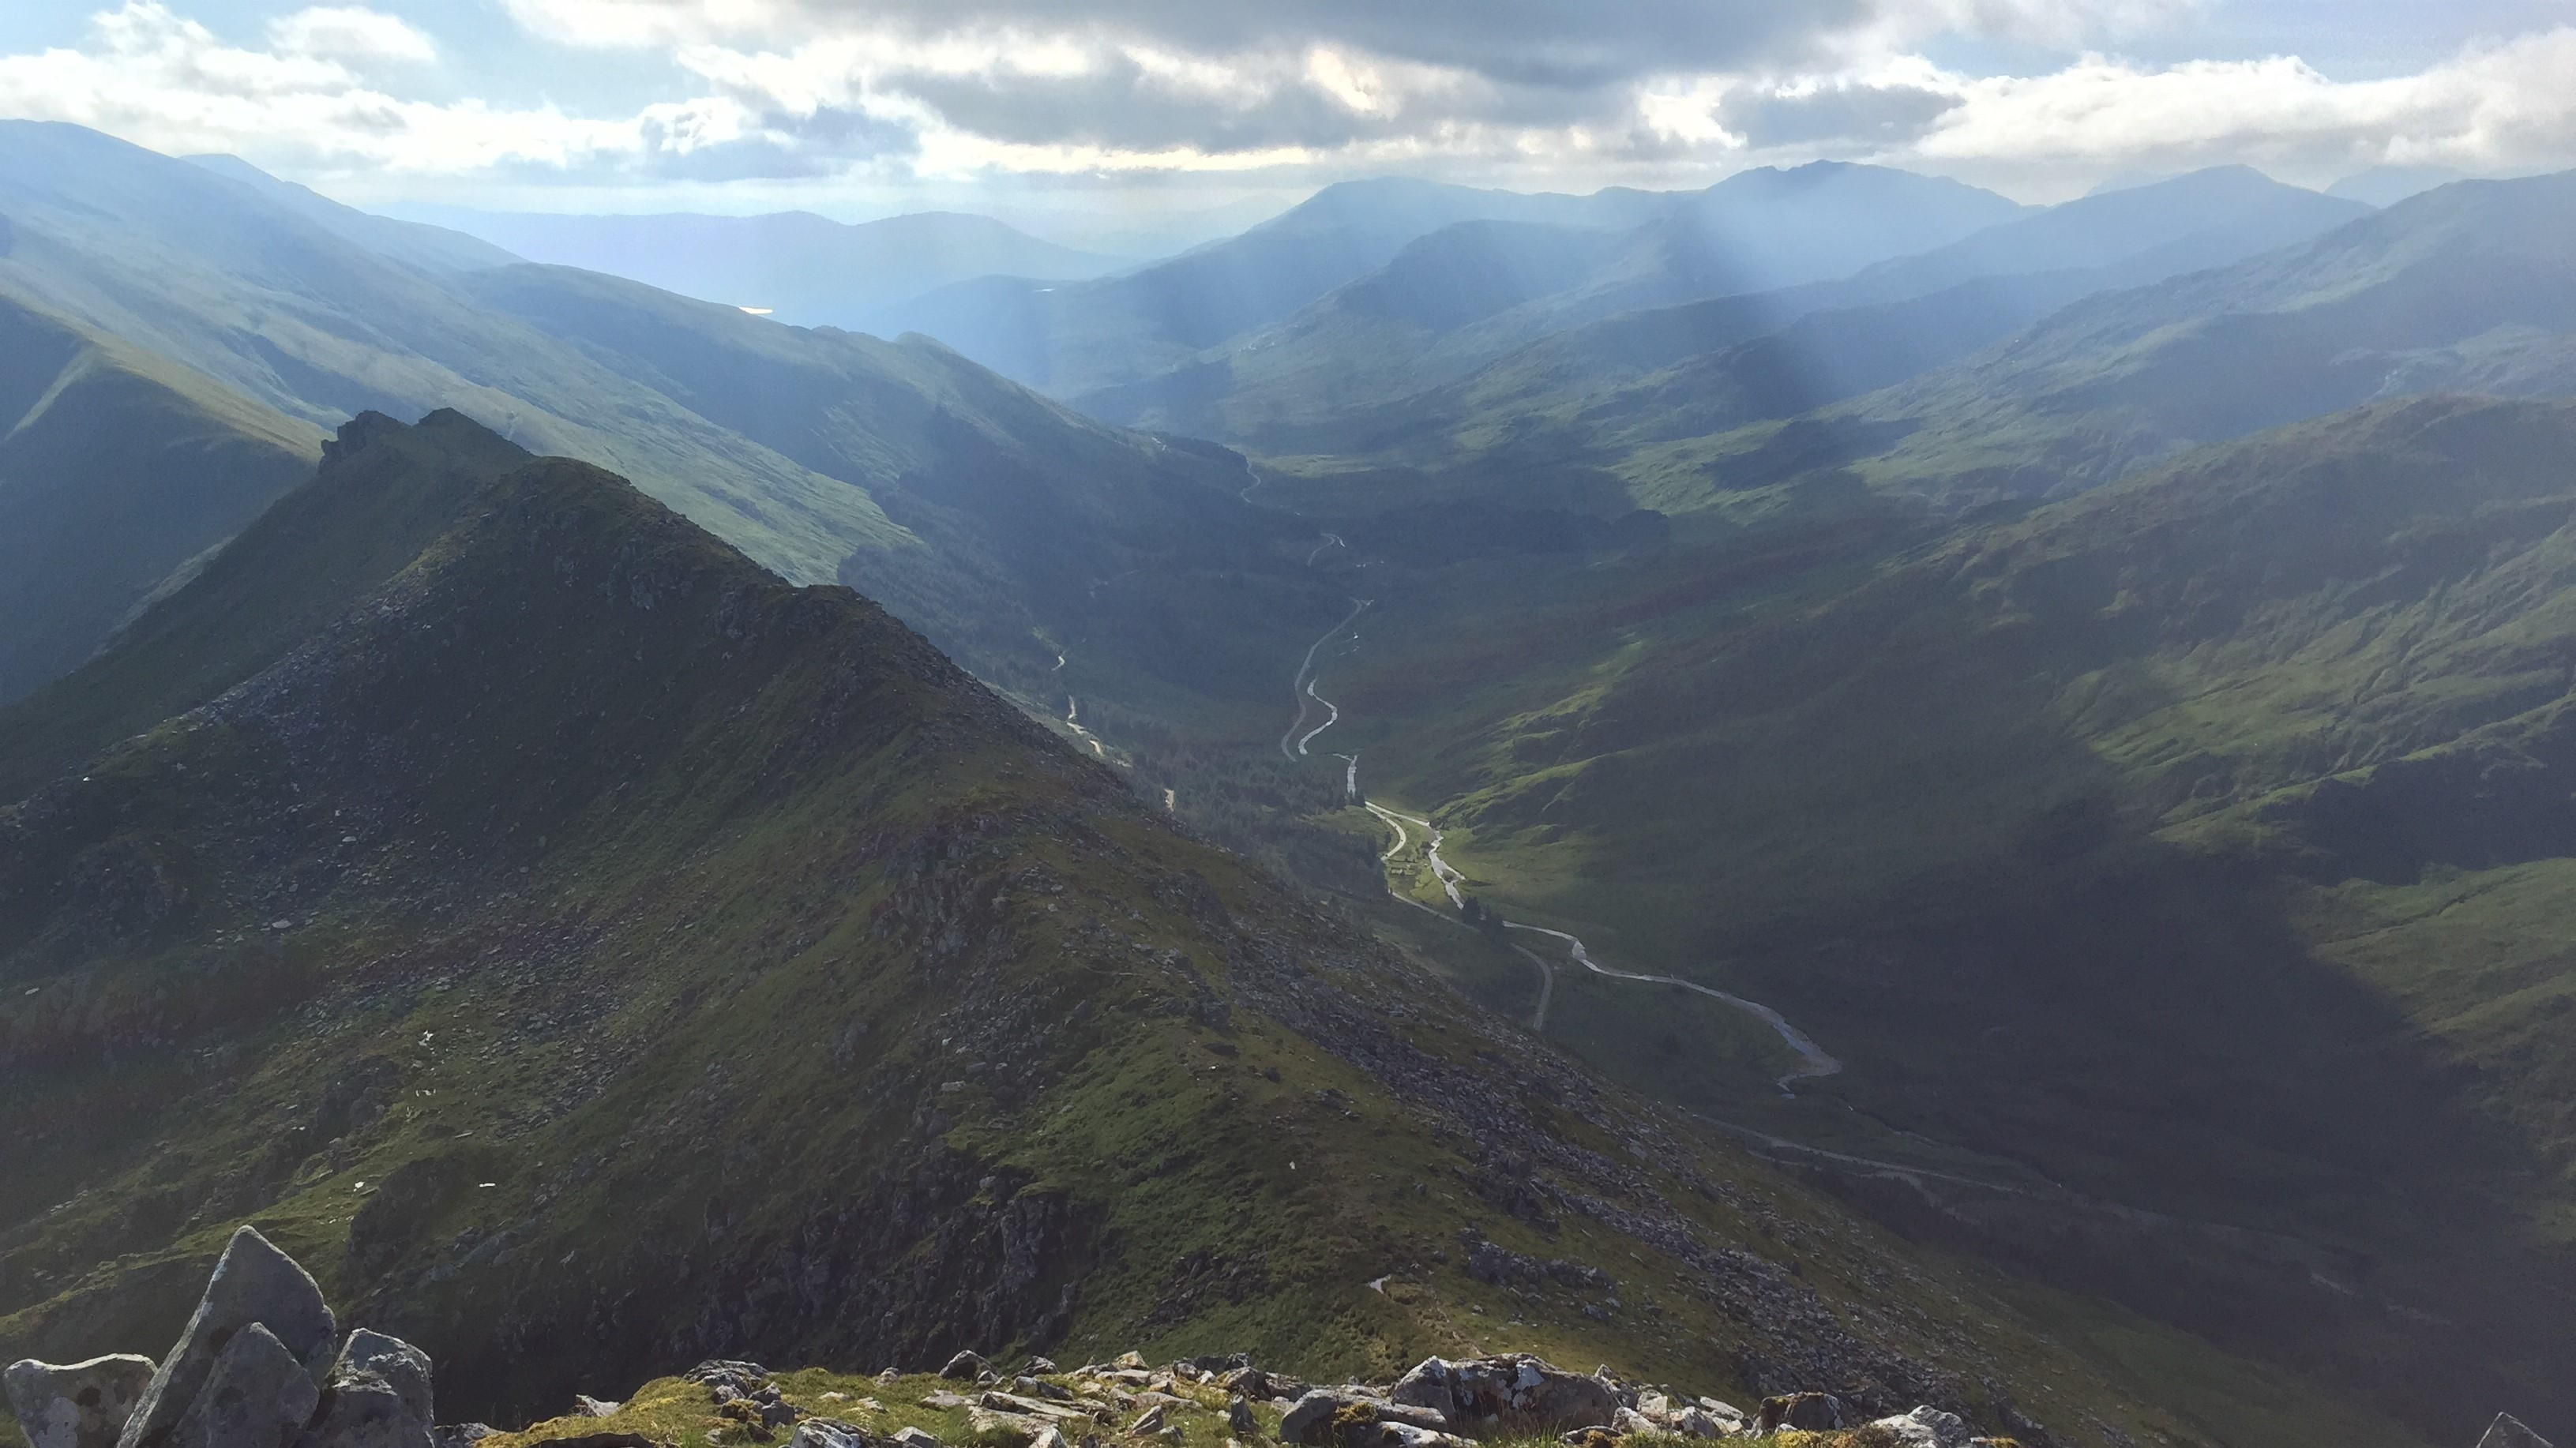 Five Sisters of Kintail and valley 2